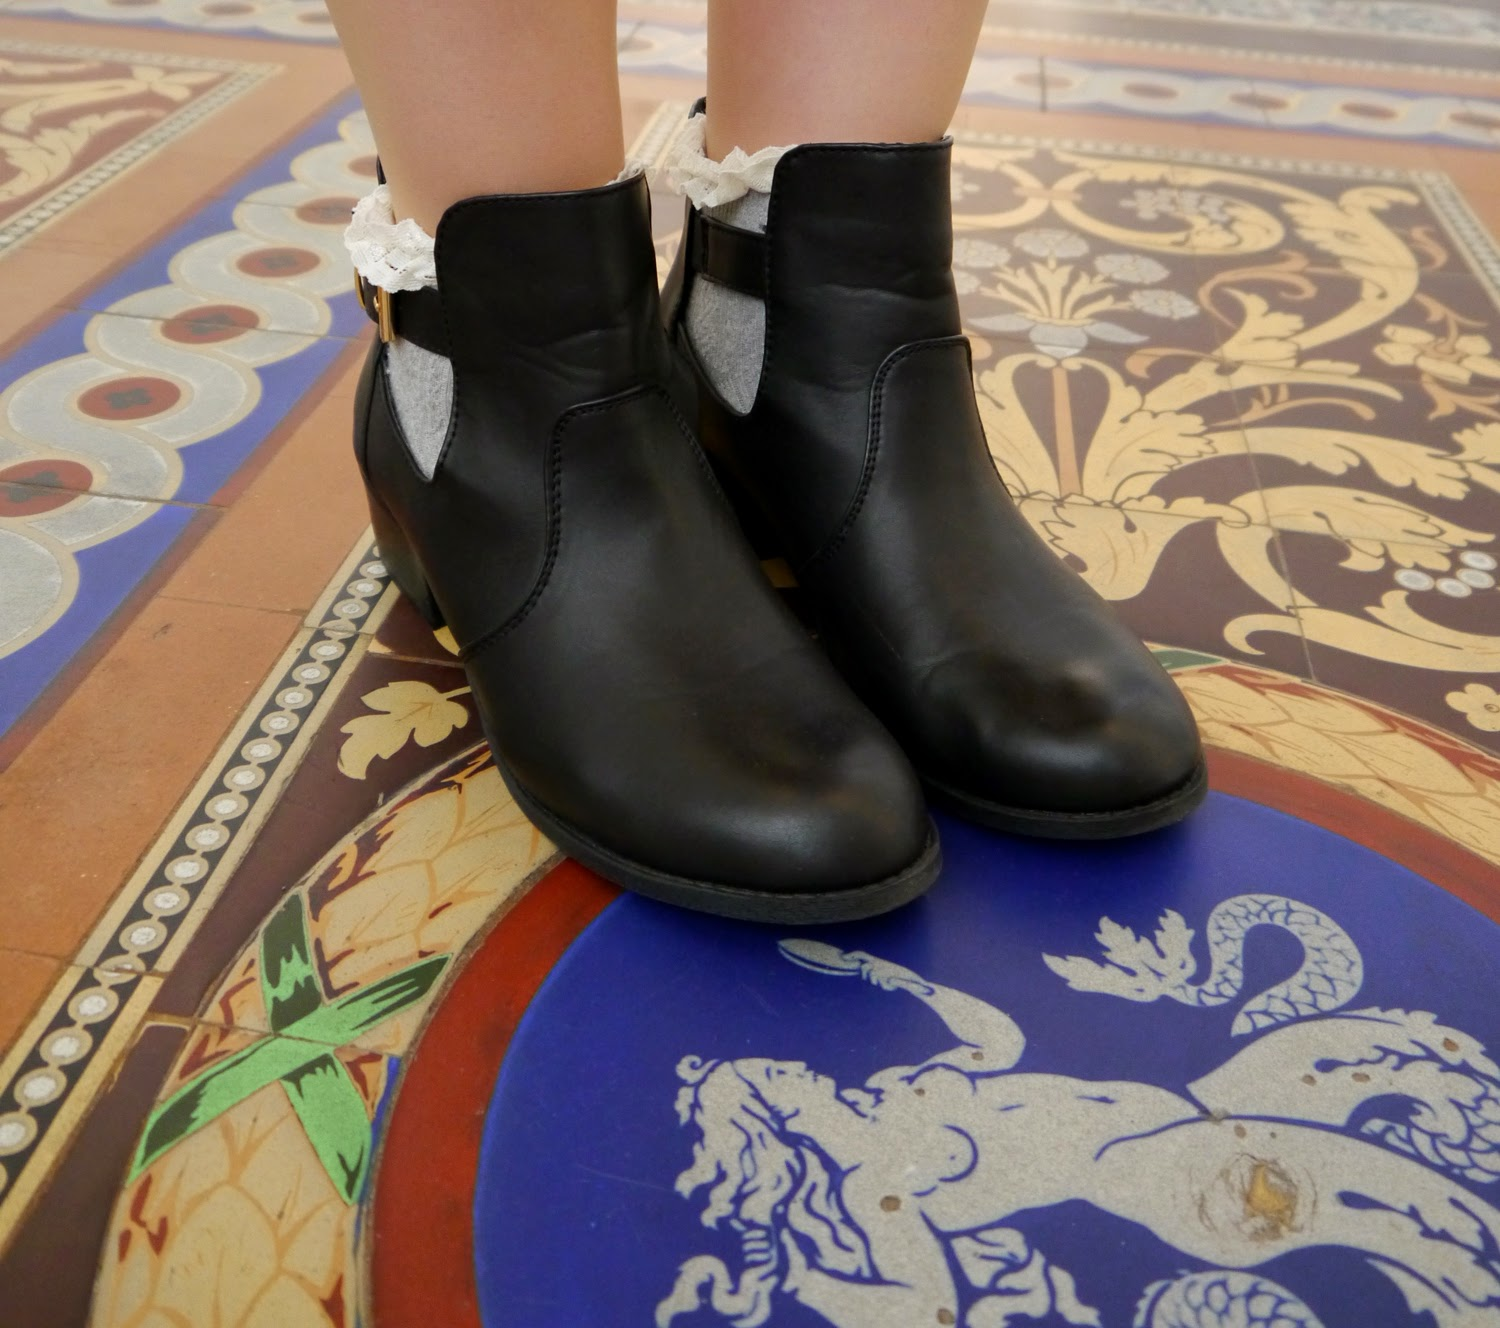 frilly ankle socks, Topshop, Primark, Oasis, boots, Roman tiles, national museum, scotland